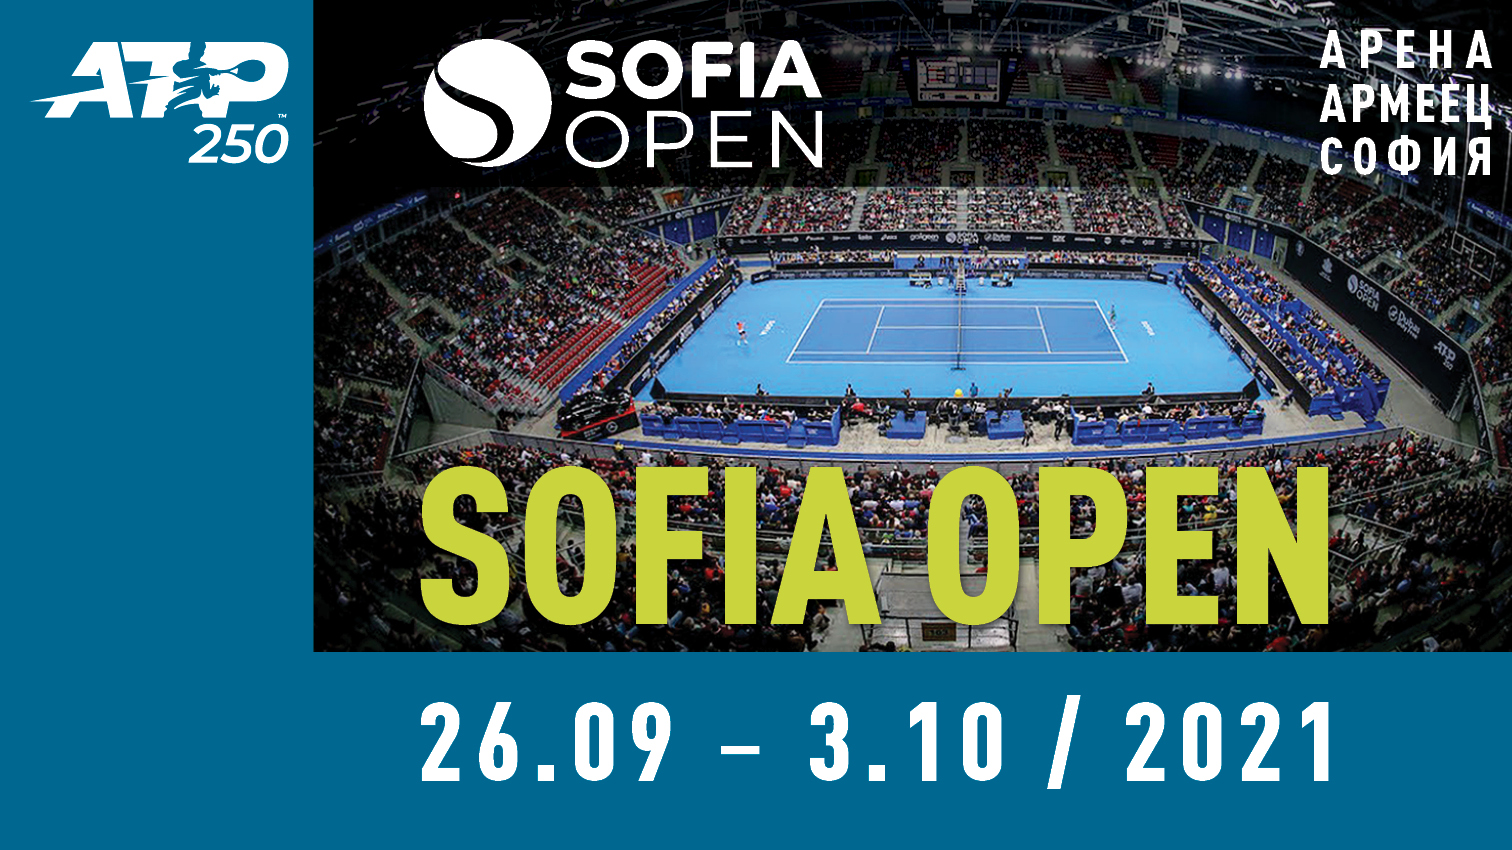 Three Top 20 players and two former champions enter Sofia Open